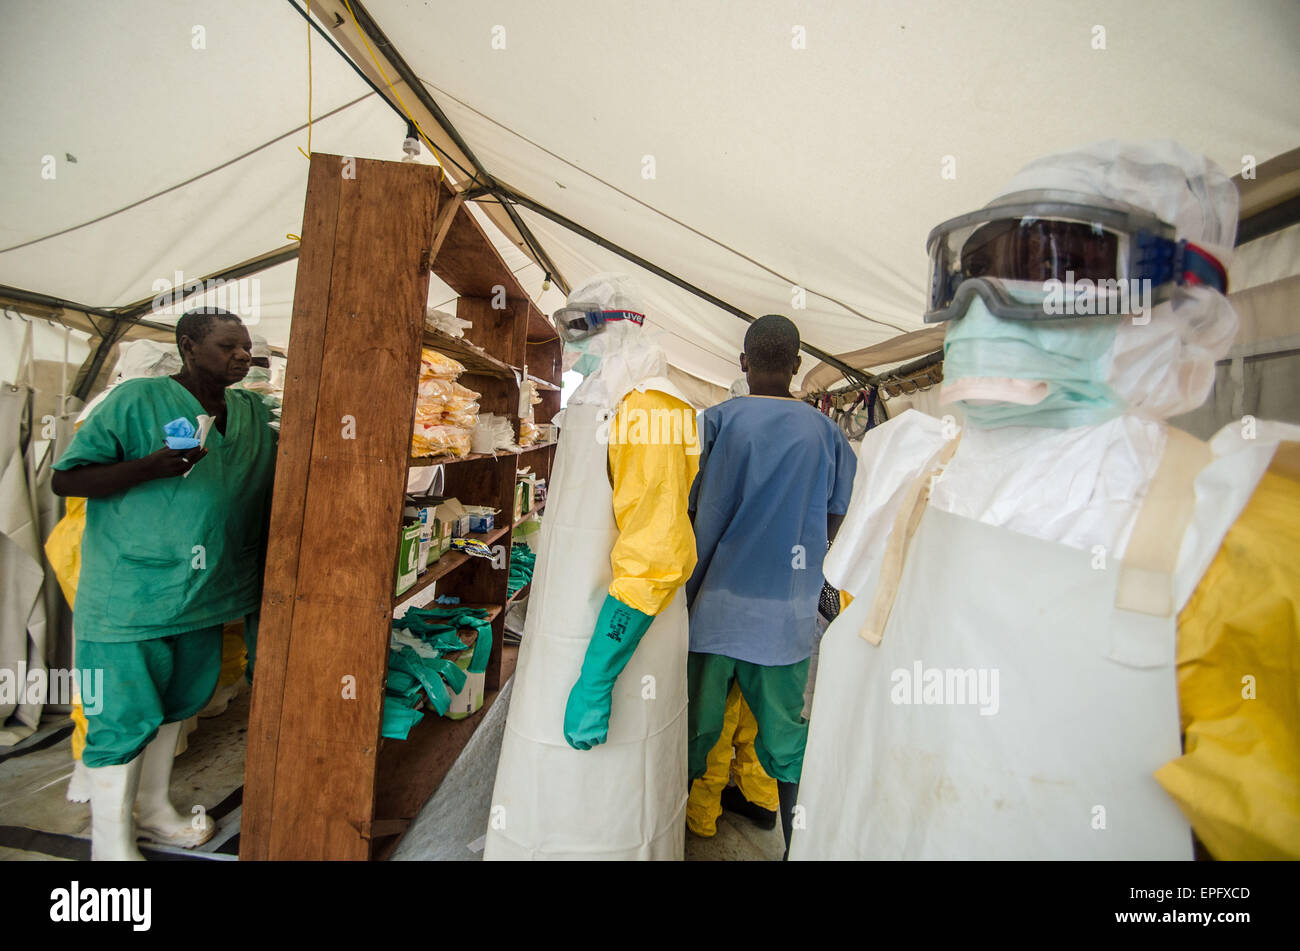 Staff prepare to enter th eisolation ward at an MSF treatment center in kailahun, Sierra Leone. - Stock Image